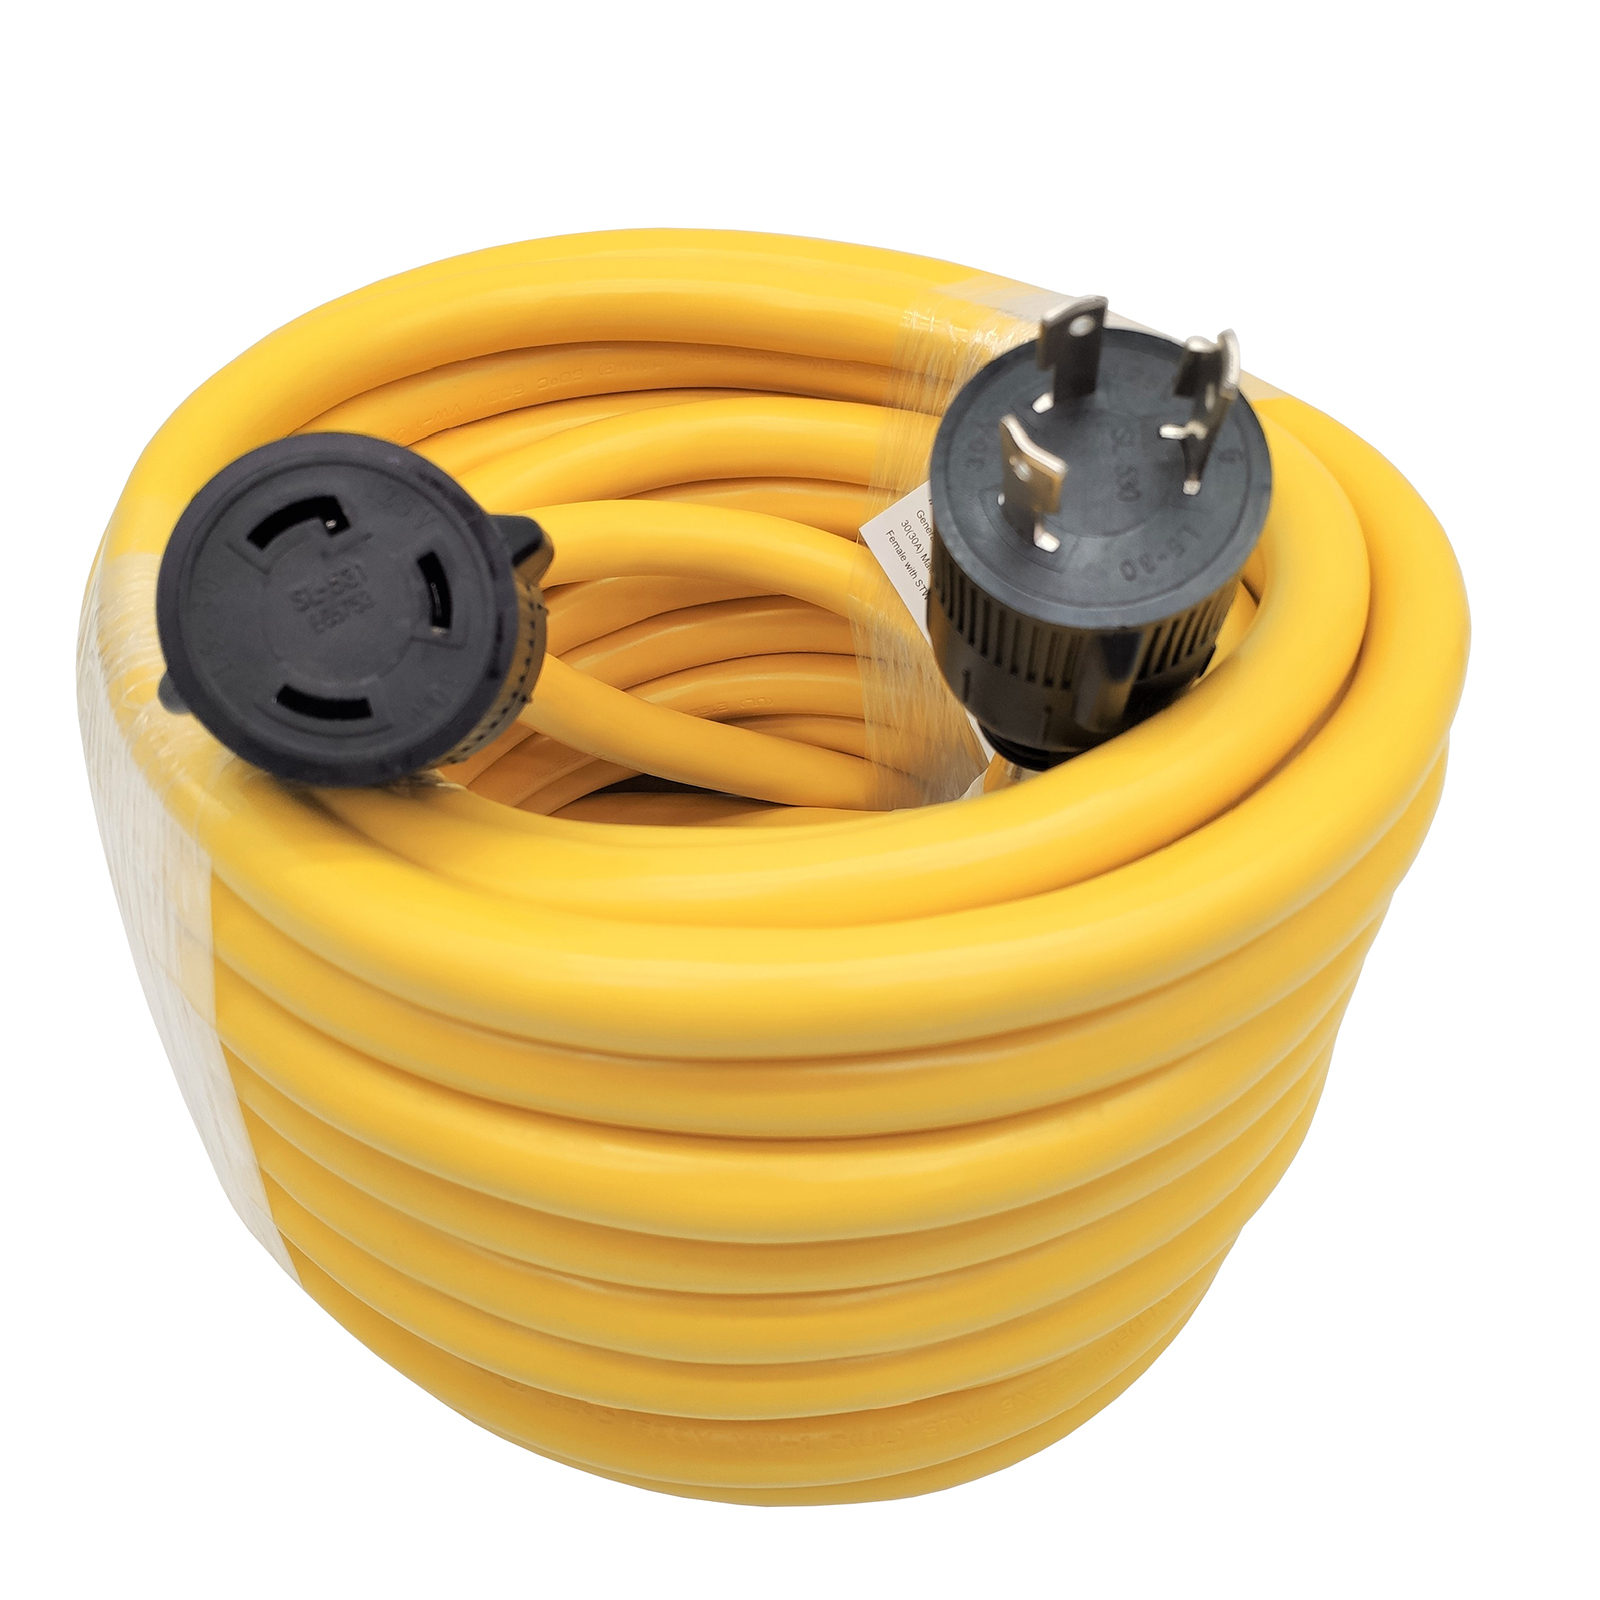 NEMA L5-30 Extension Cord 50 Feet